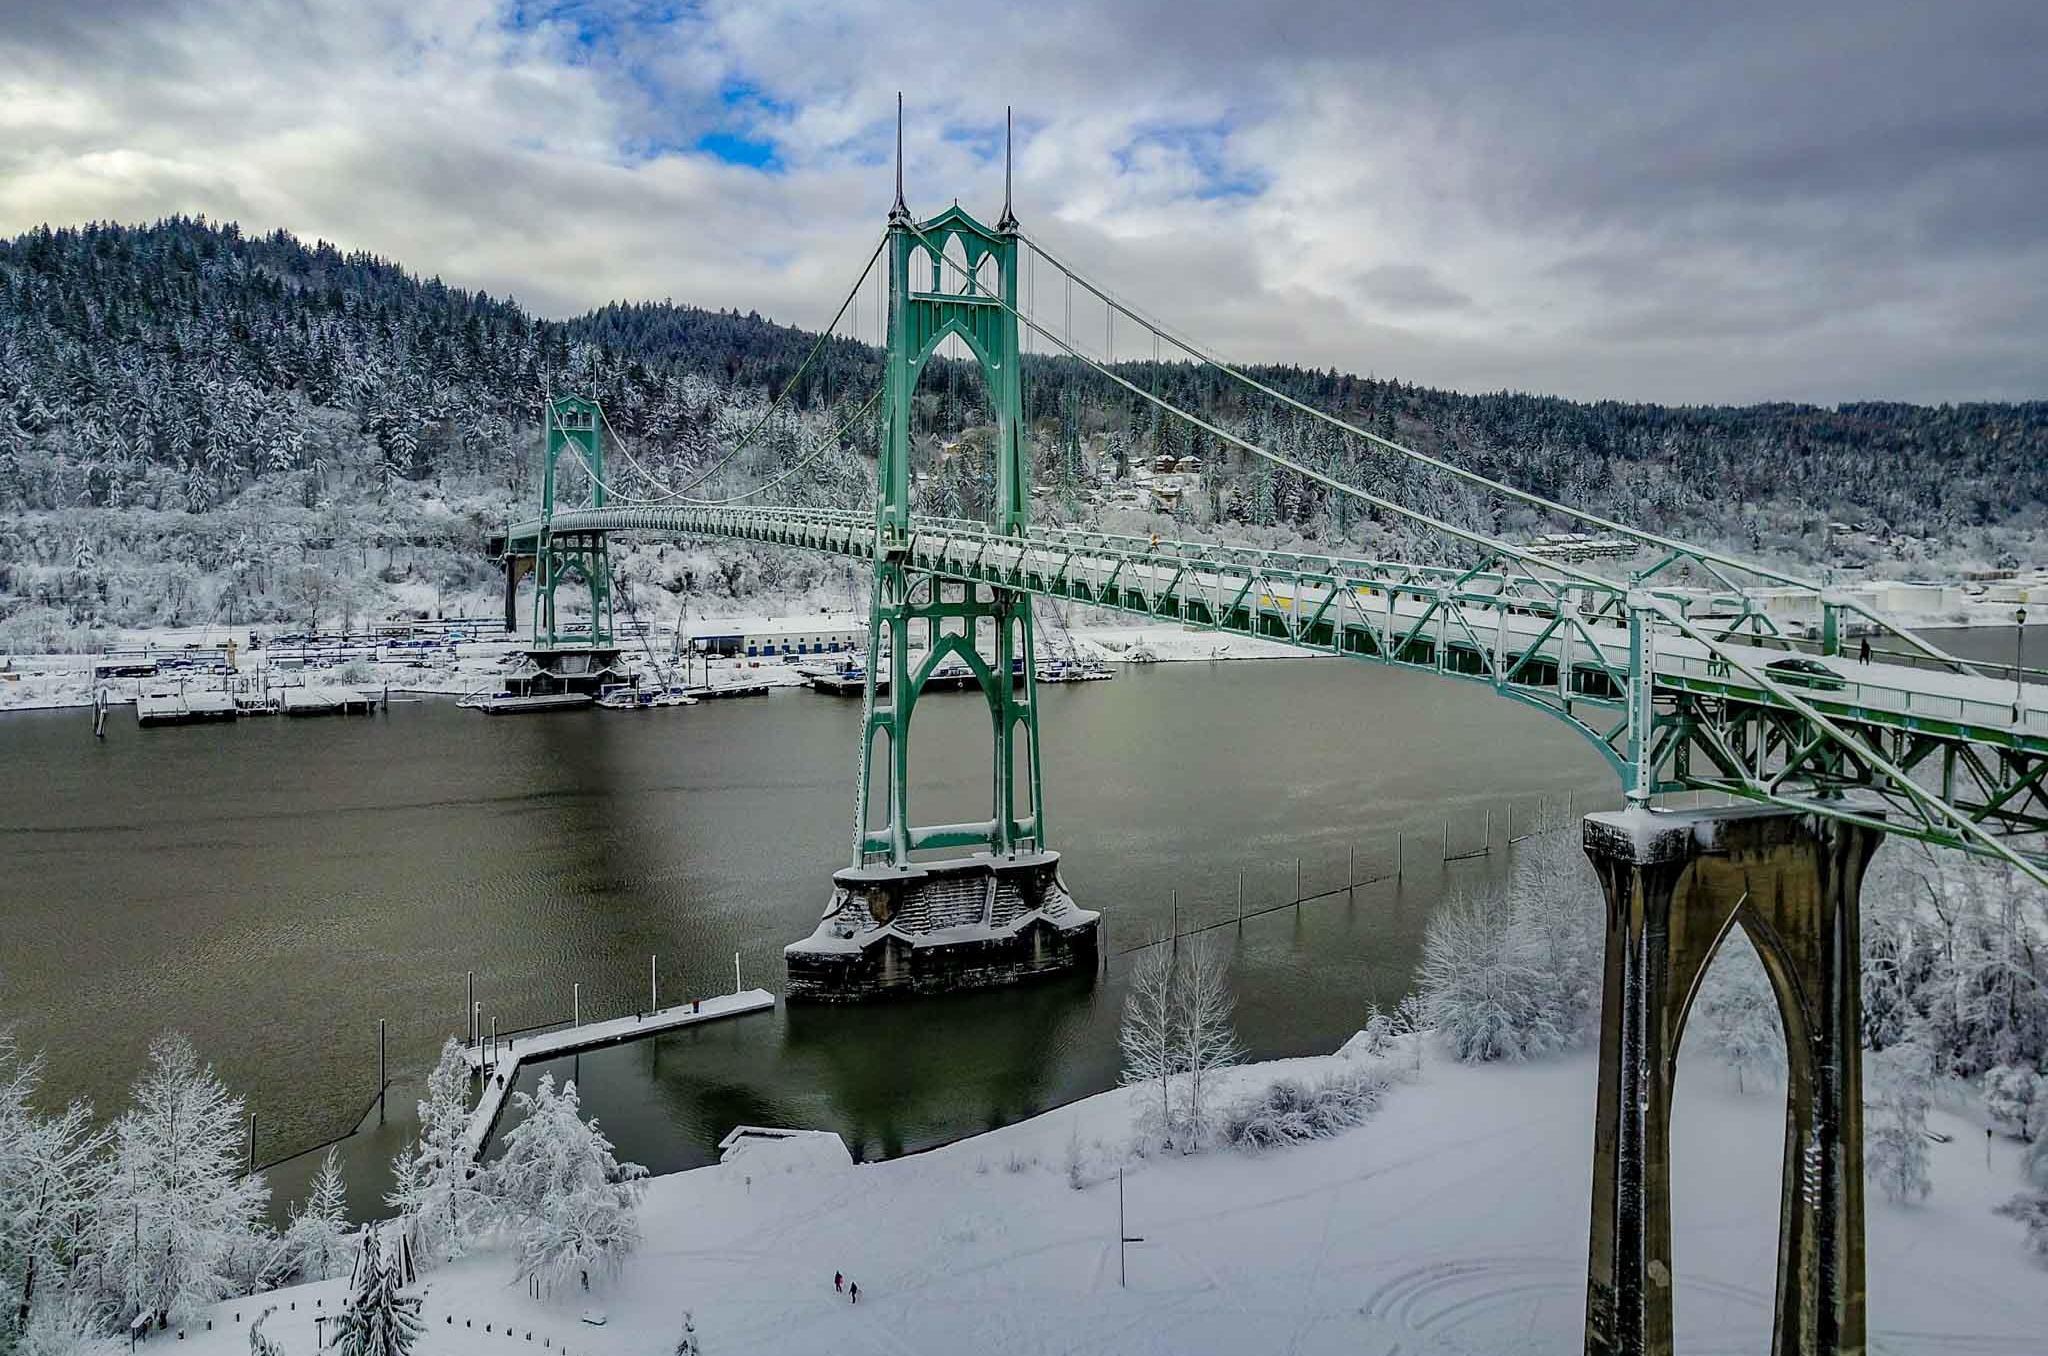 St. Johns Bridge Inspection by UAV